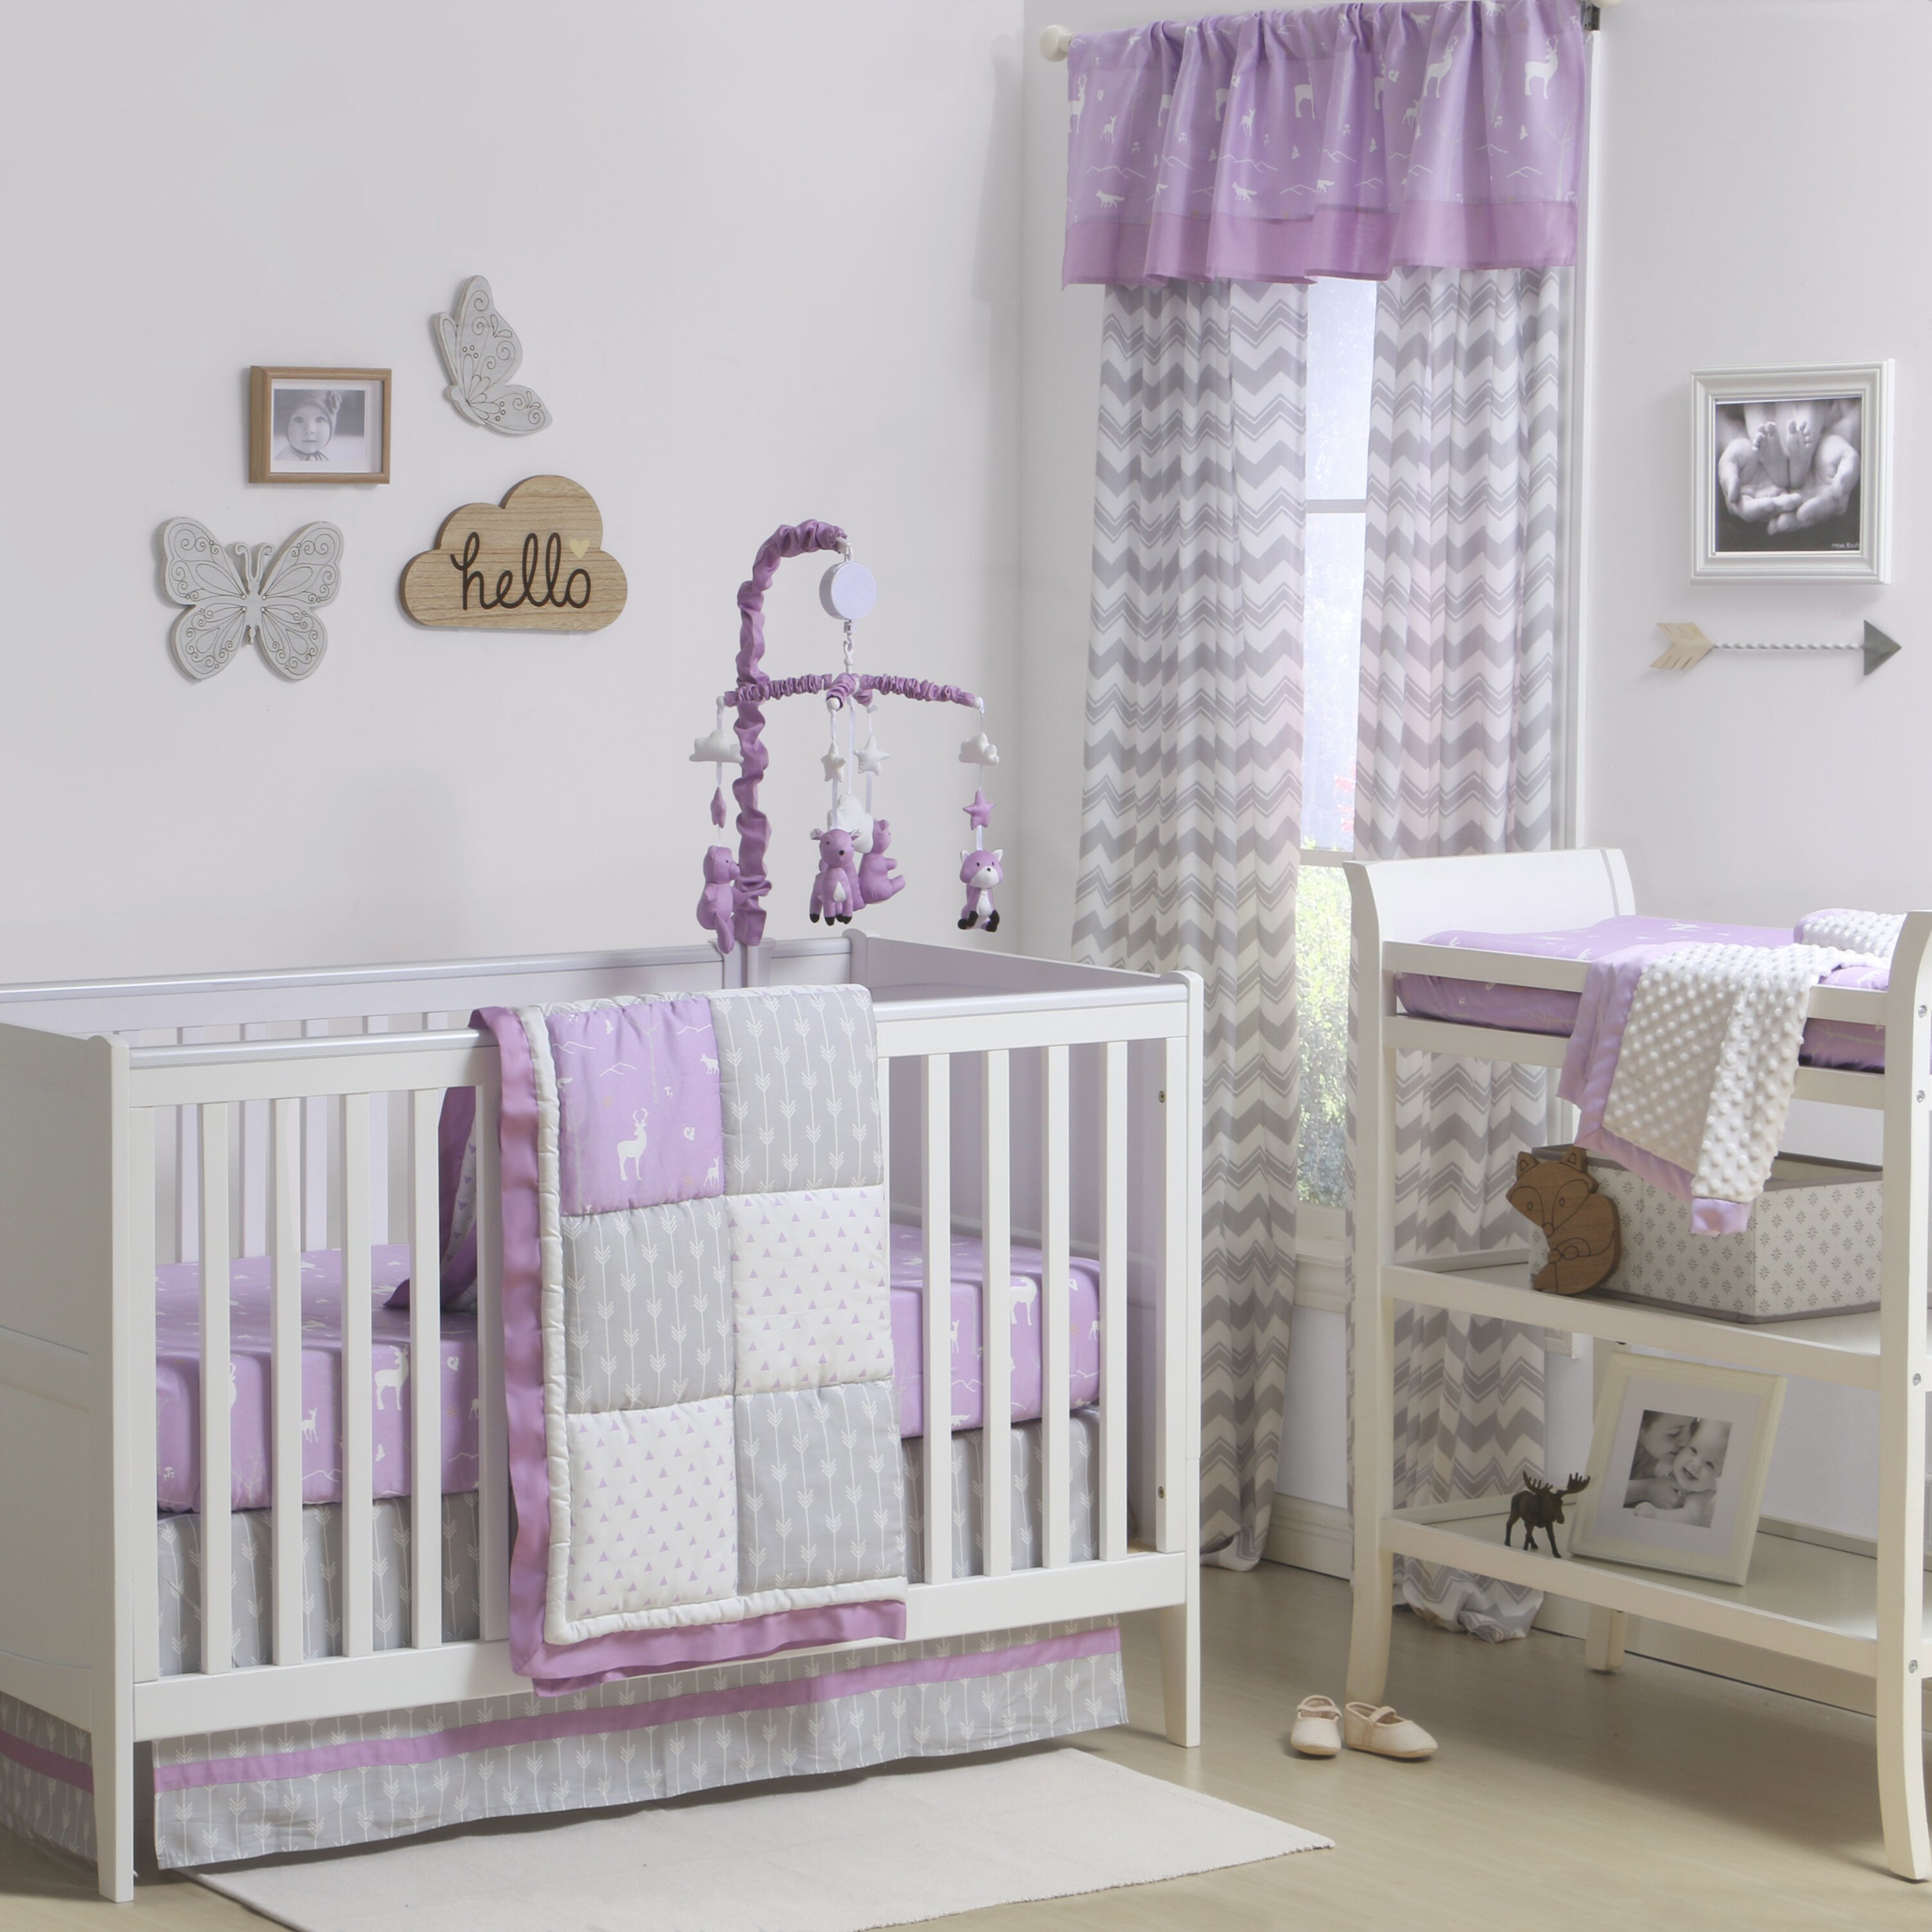 Crib for sale halifax - The Peanut Shell Wild And Free Patchwork 4 Piece Crib Bedding Set